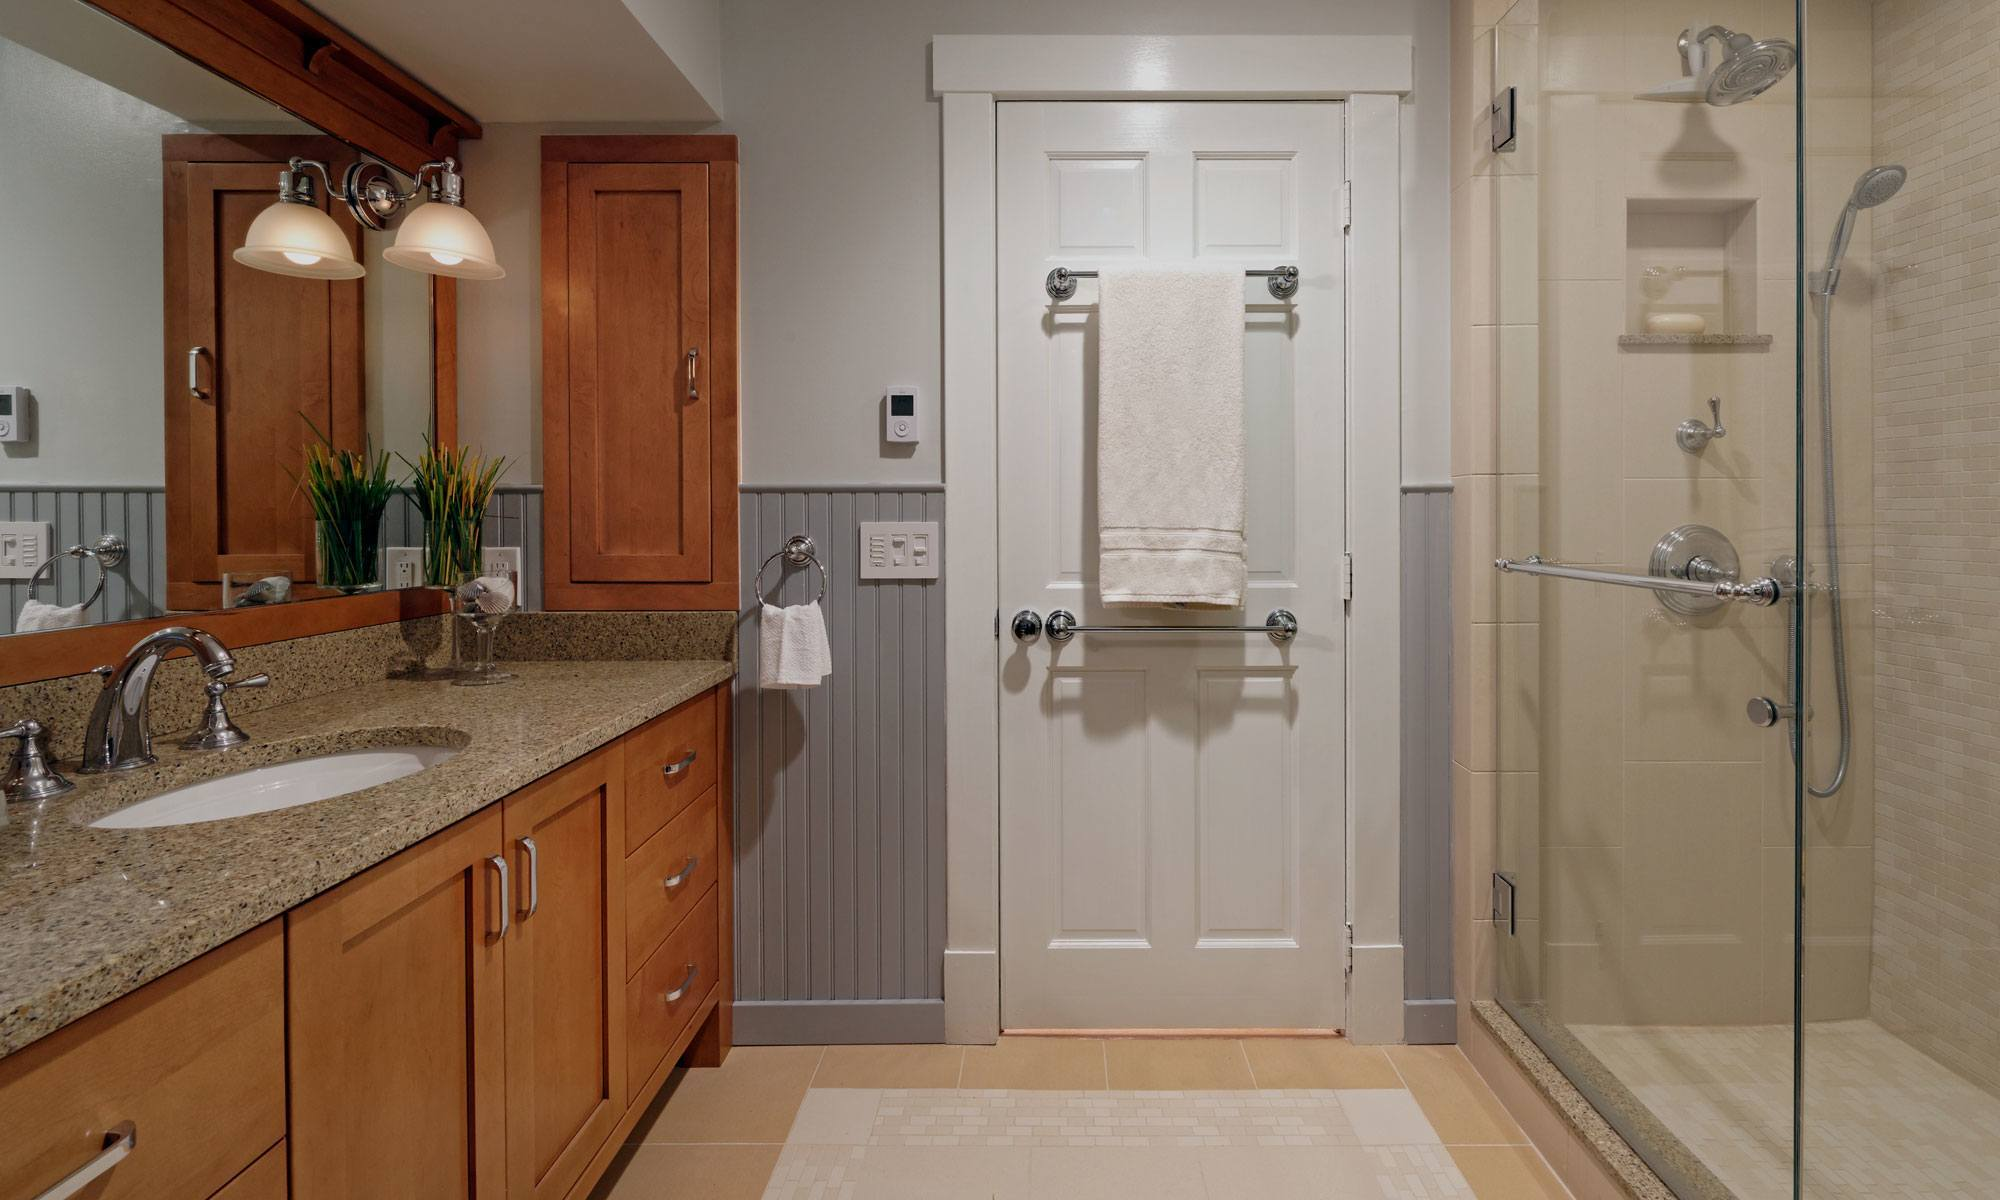 Maryland remodeling contractor